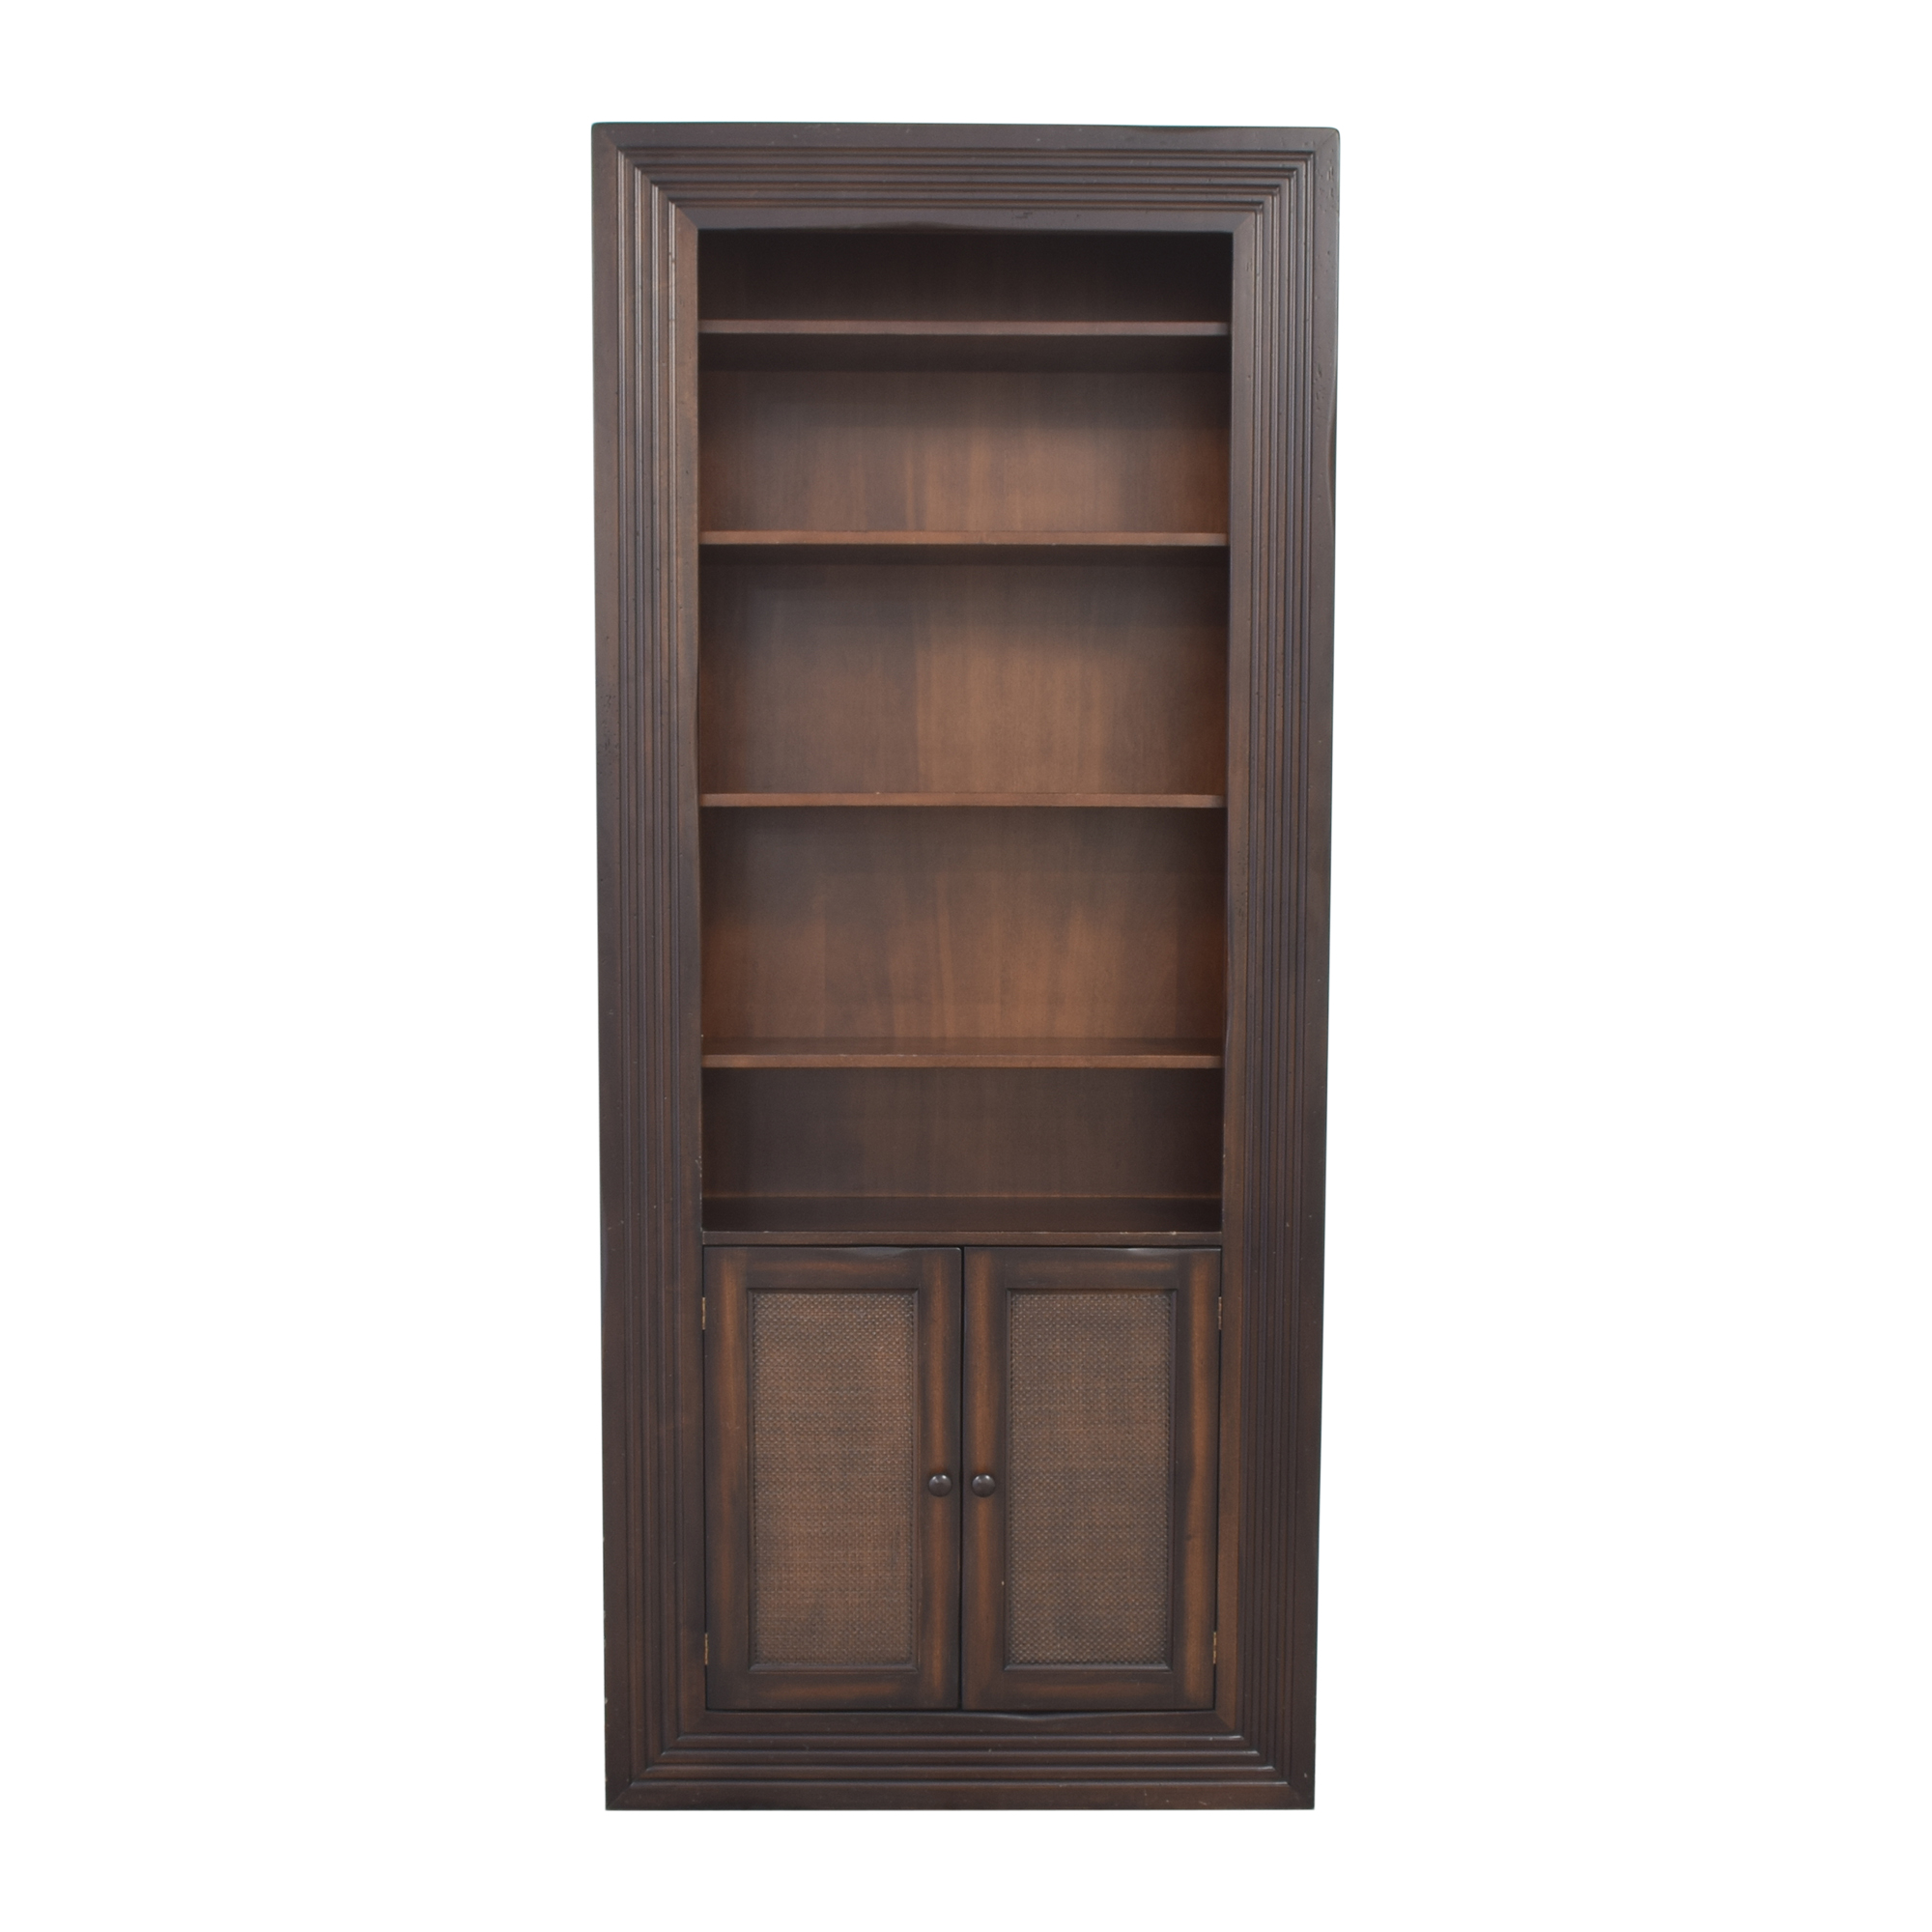 Bloomingdale's Bloomingdale's Barbados Shelf and Cabinet Bookcase Bookcases & Shelving